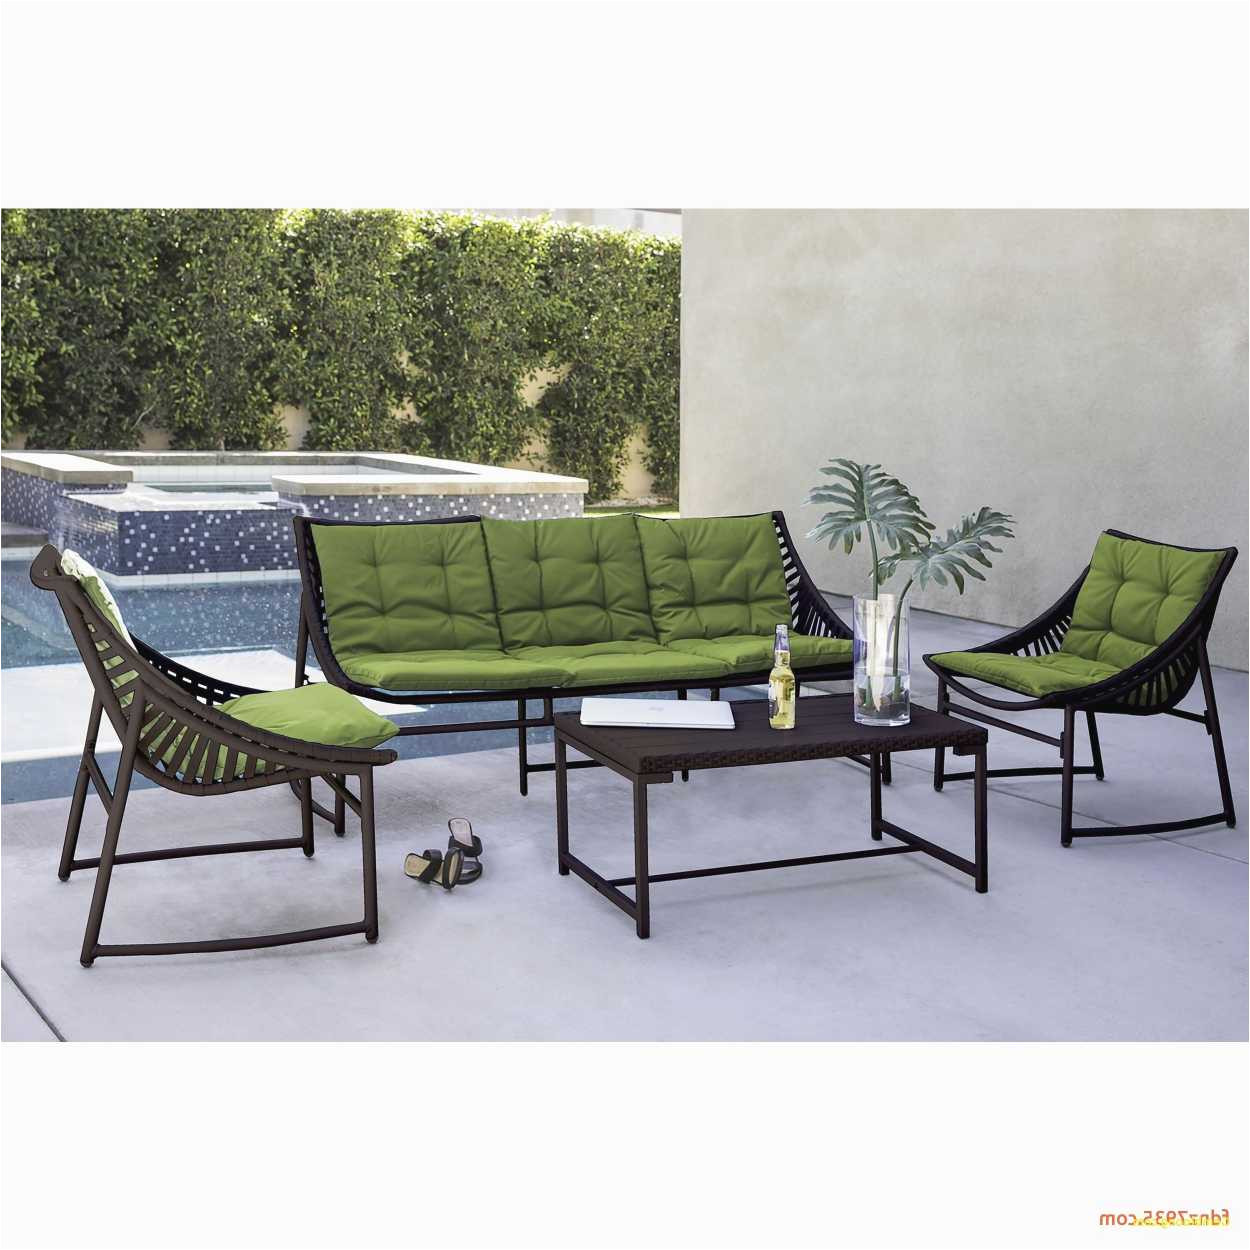 full size of home design cheap patio furniture cushions luxury chair wicker outdoor sofa 0d